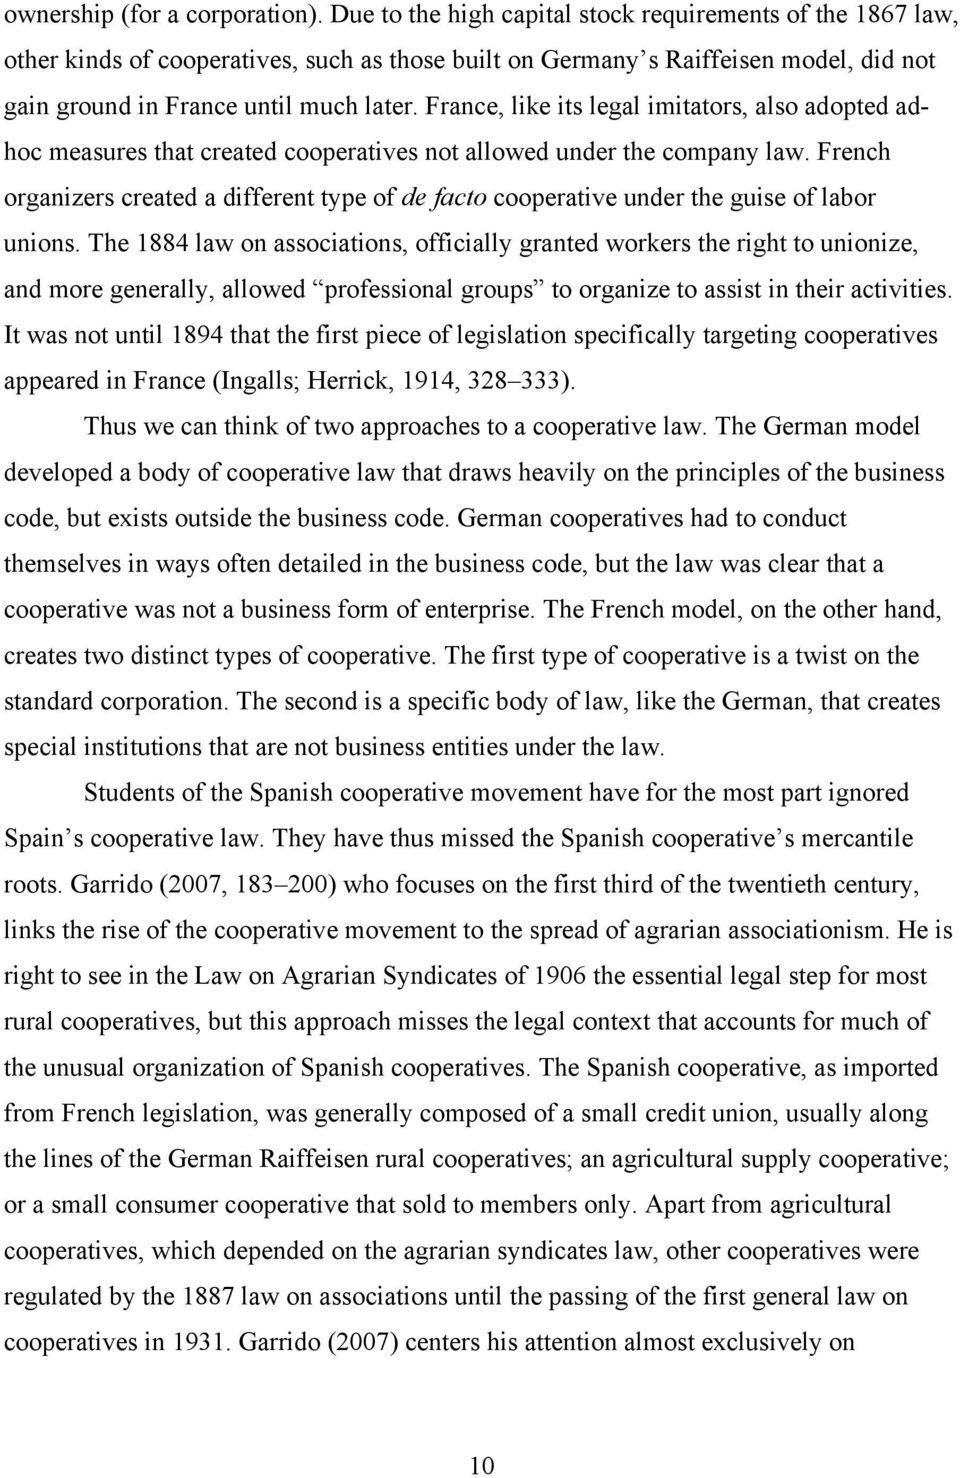 France, like its legal imitators, also adopted adhoc measures that created cooperatives not allowed under the company law.